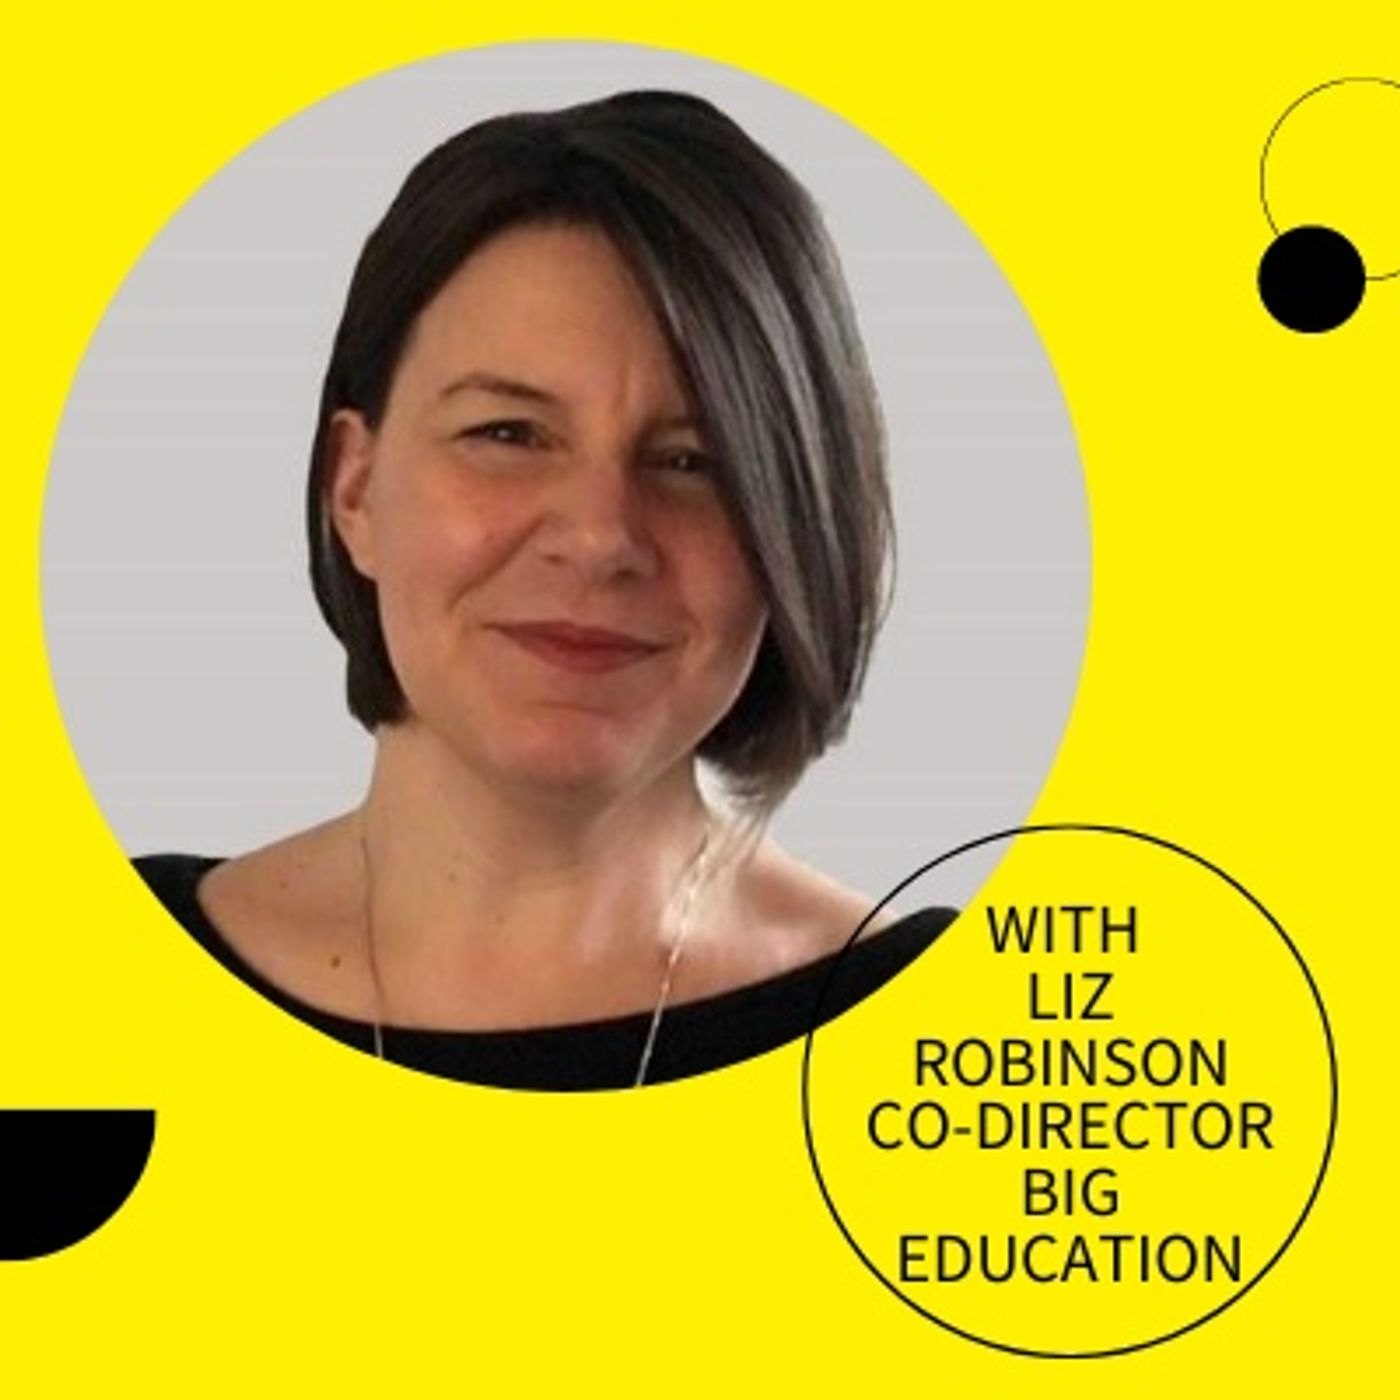 Episode 5, Liz Robinson: What will school leaders do with this new rebellious streak?